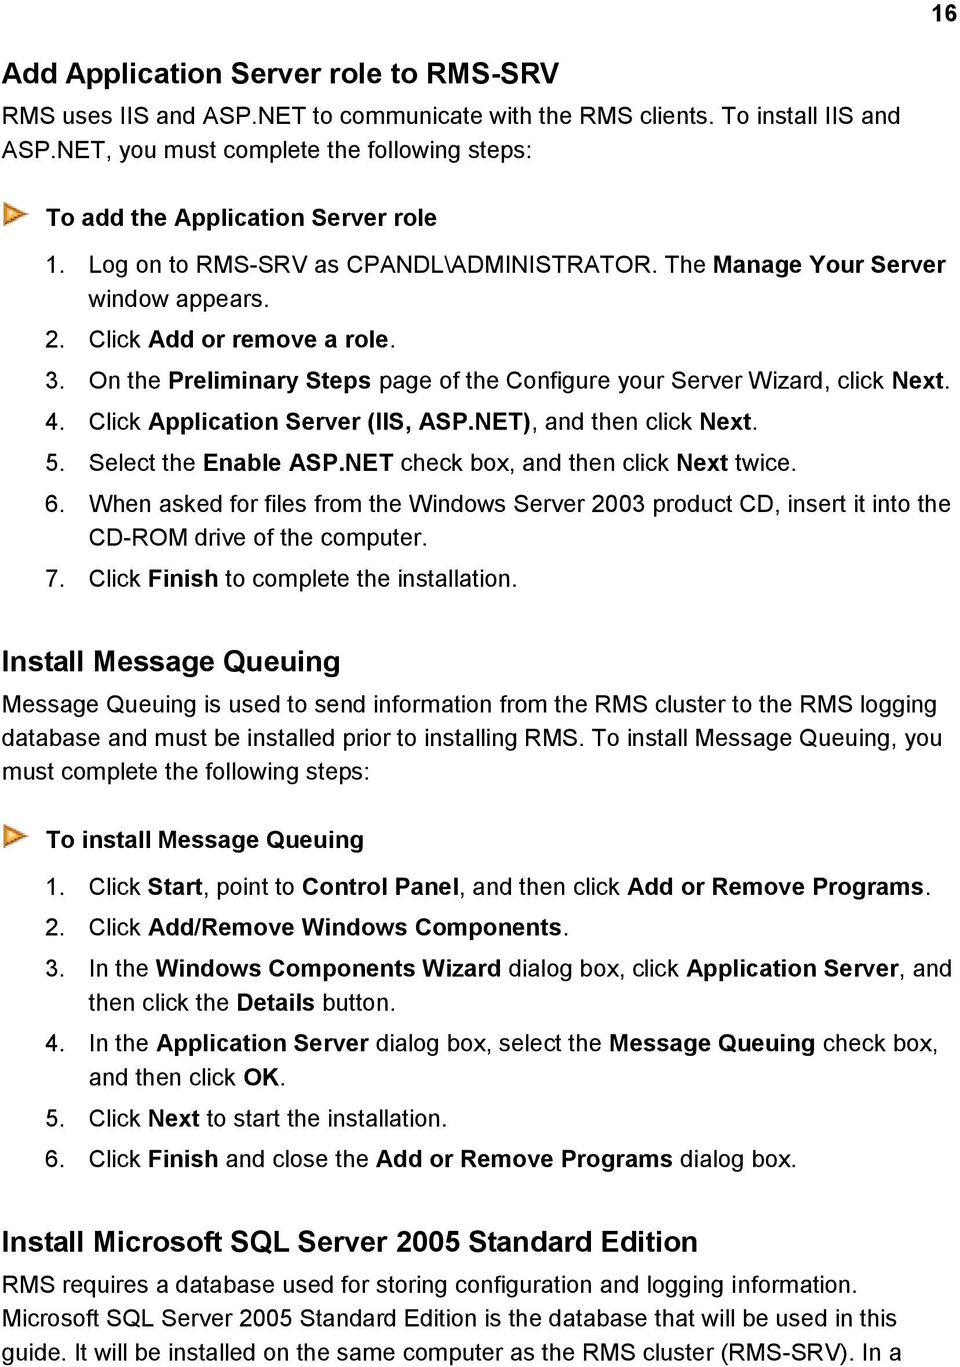 On the Preliminary Steps page of the Configure your Server Wizard, click Next. 4. Click Application Server (IIS, ASP.NET), and then click Next. 5. Select the Enable ASP.